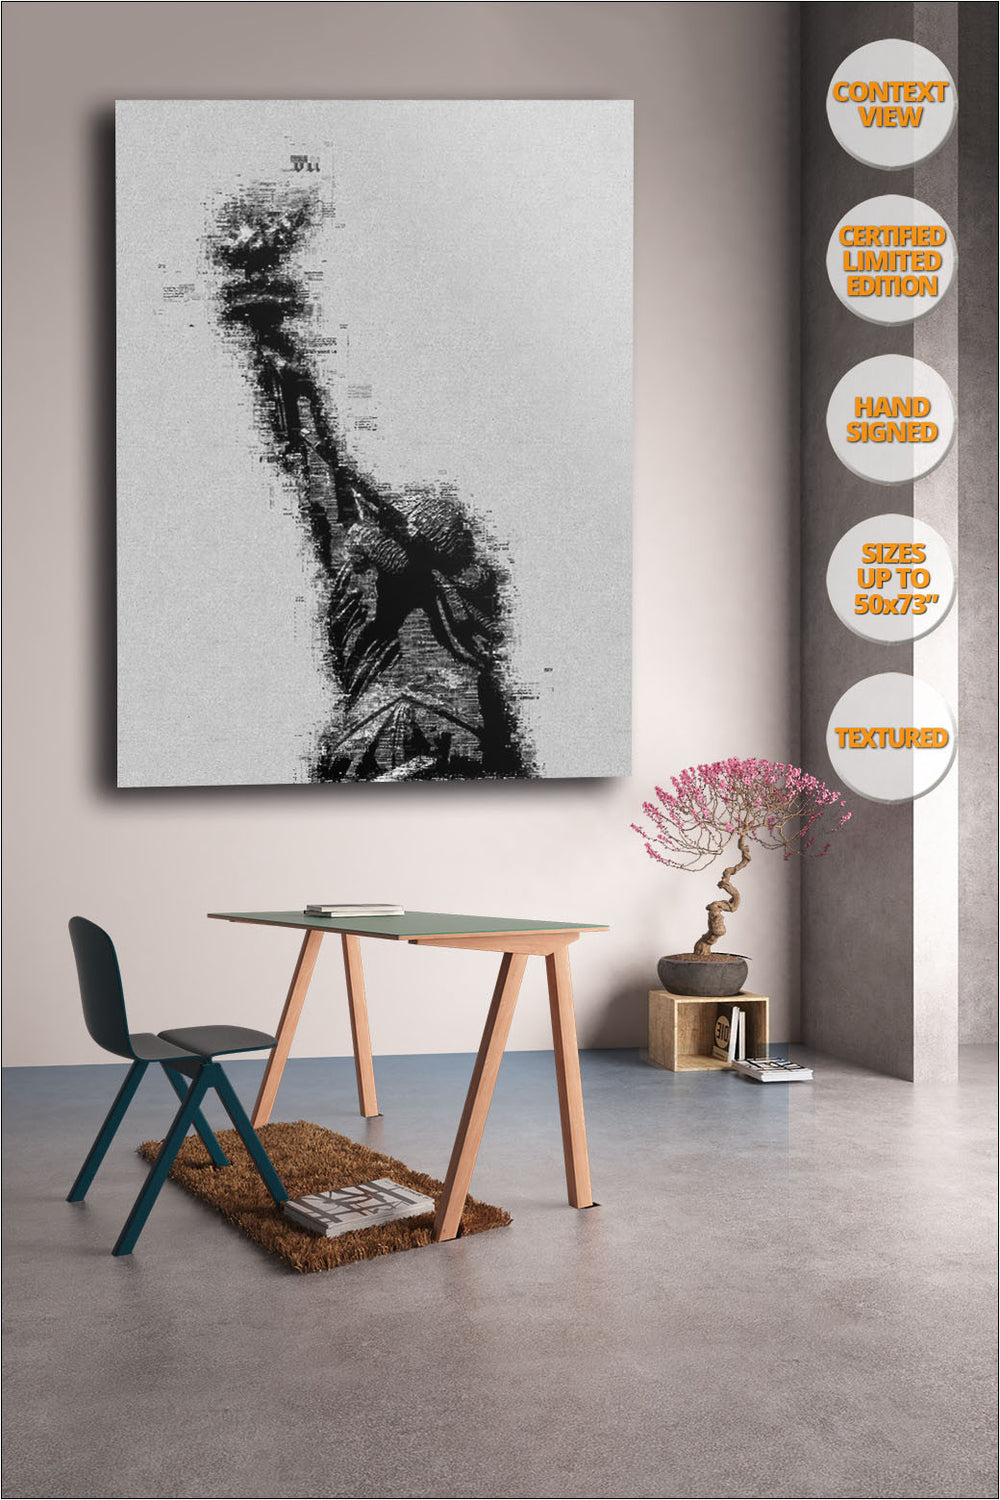 The Statue of Liberty, Manhattan, New York. | Print hanged in bedroom.